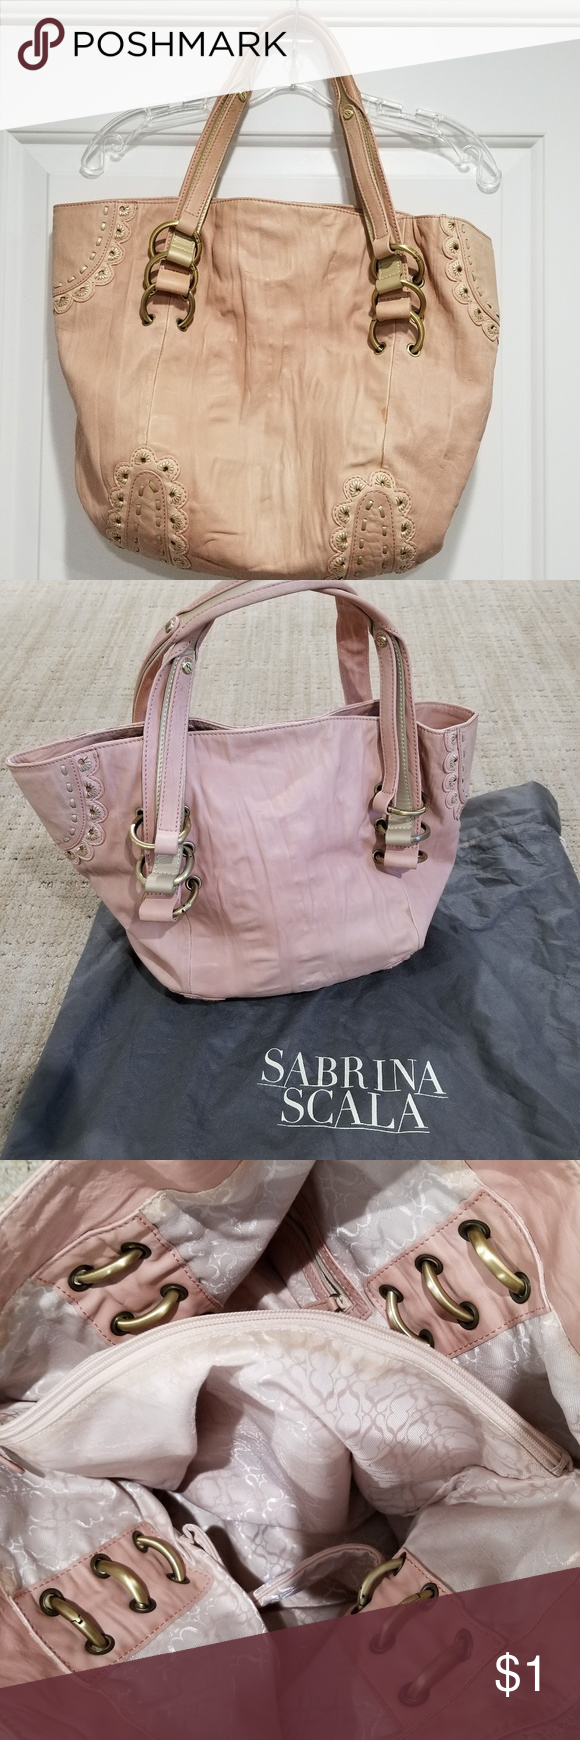 Sabrina Scala Satchel Leather Handbag Pink Purse This Is A Beautiful